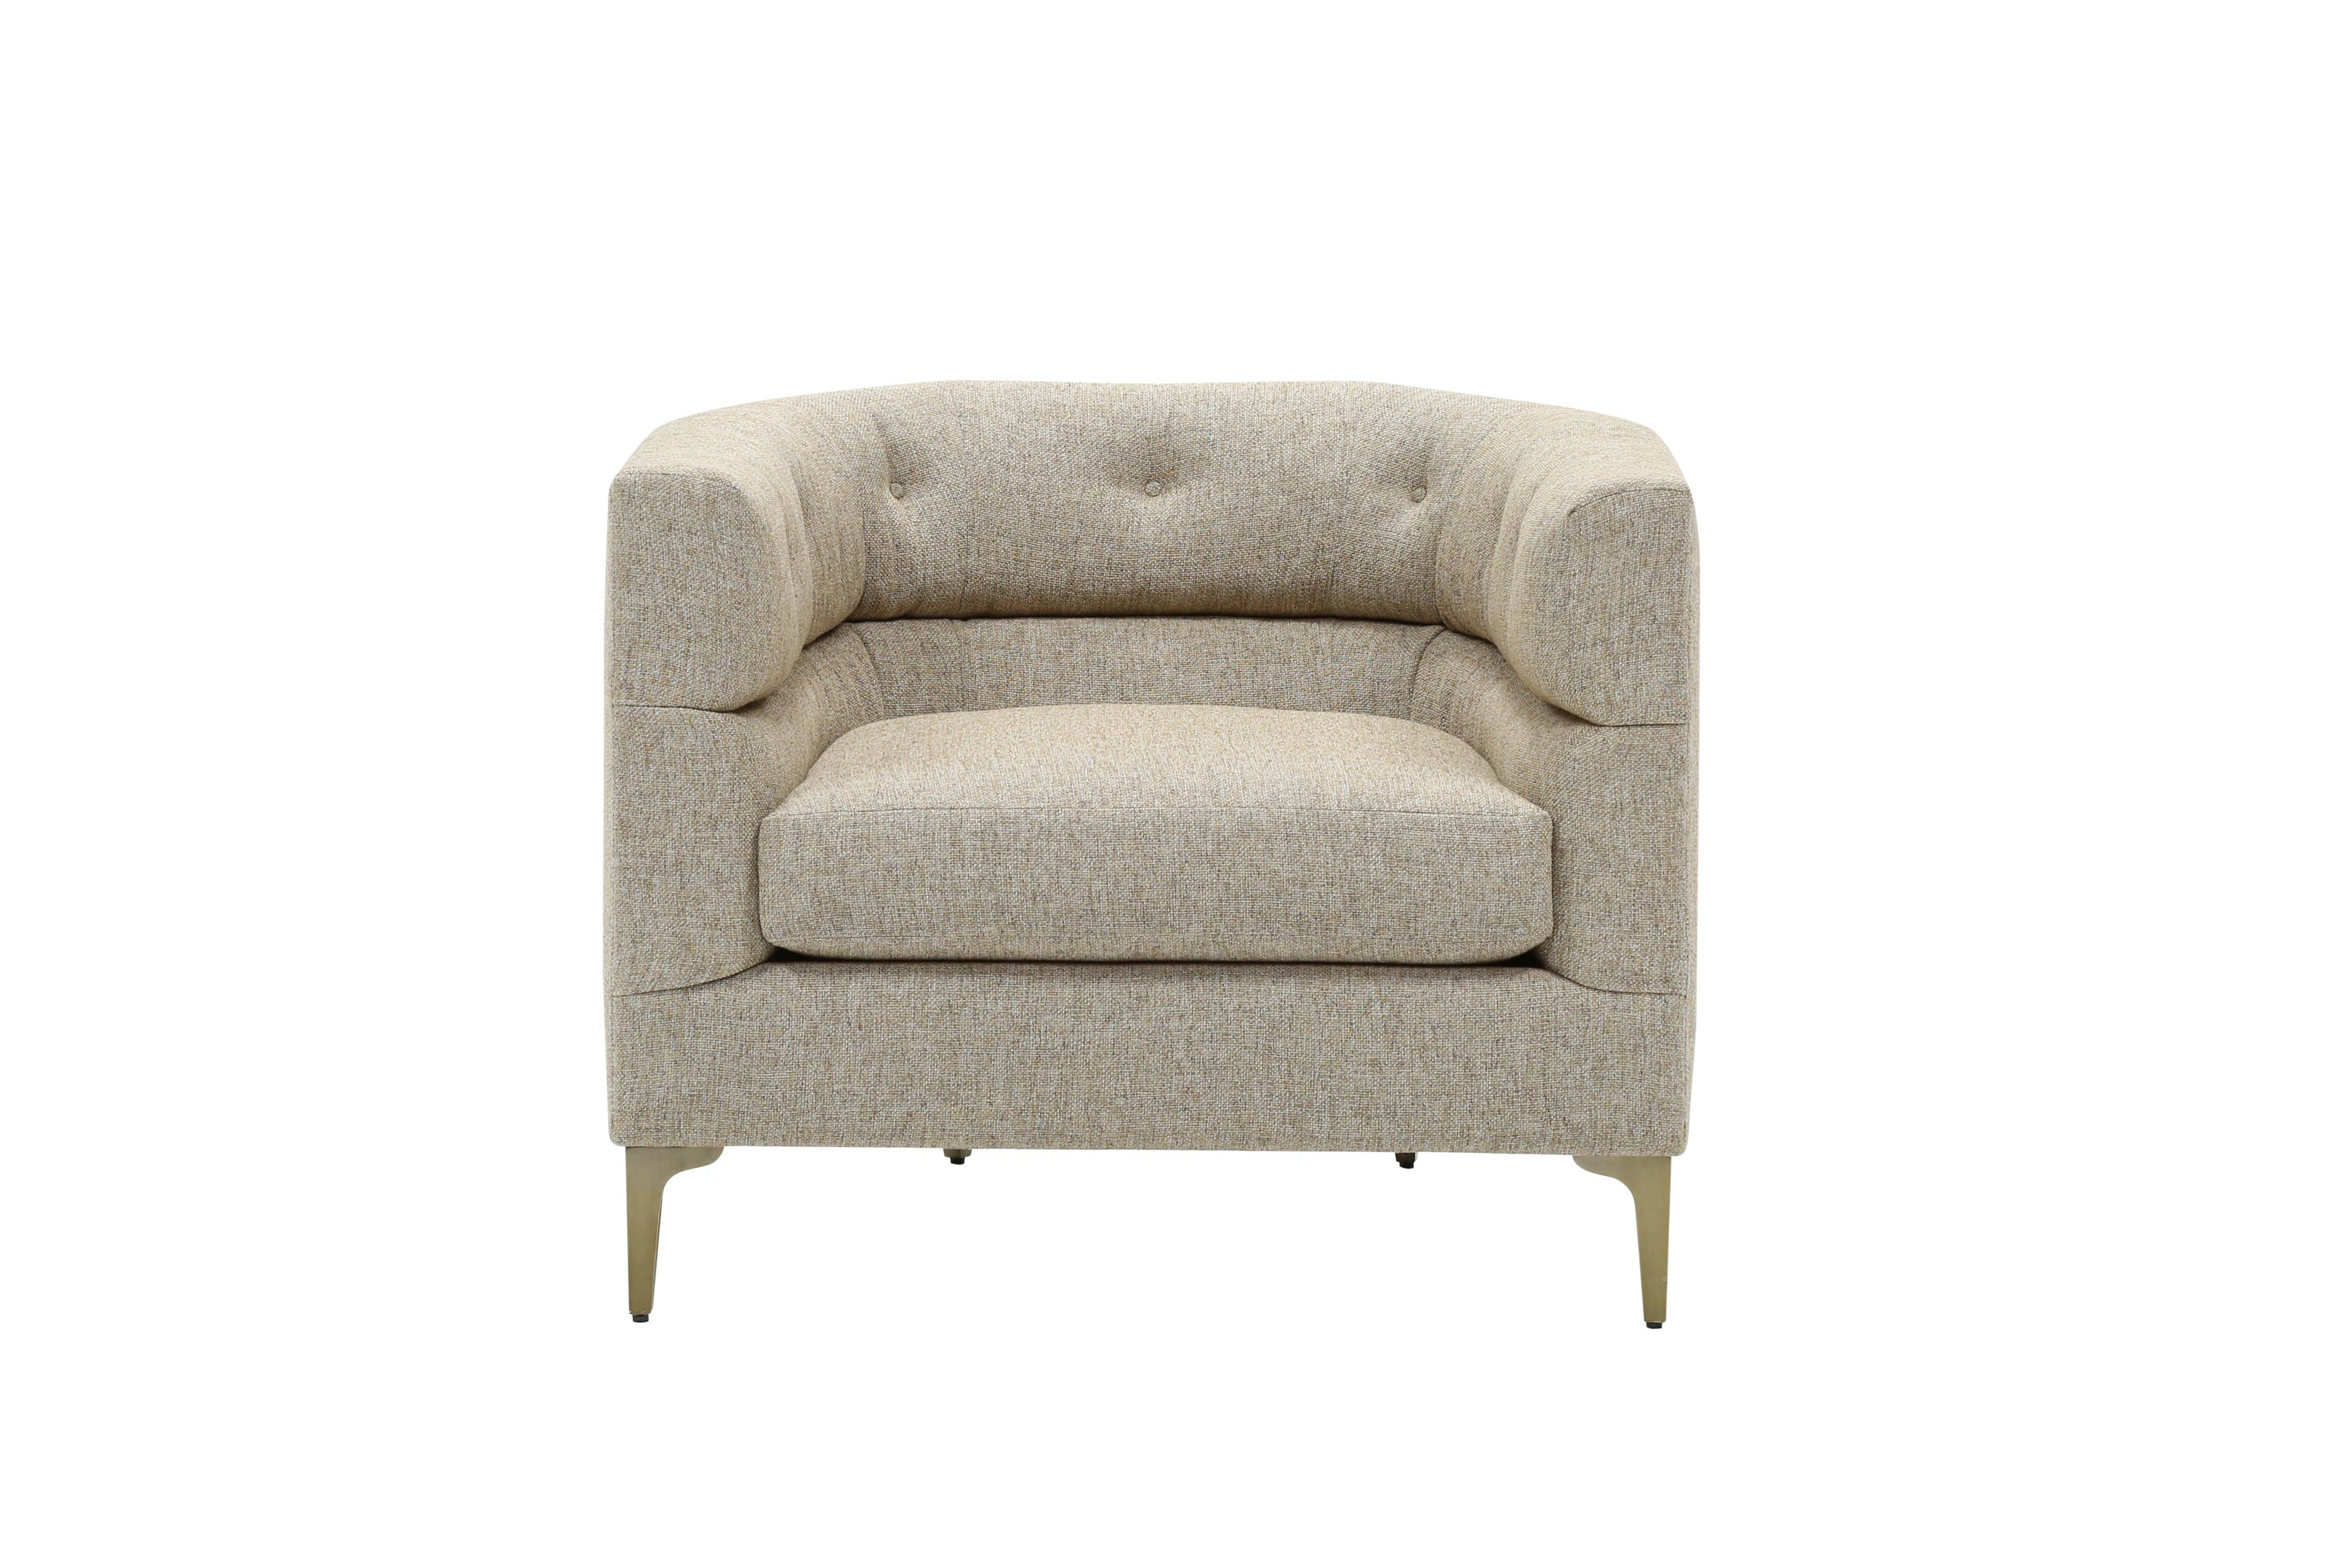 Nate Berkus Just Launched A Home Collection With Hubby Jeremiah Intended For Ames Arm Sofa Chairs By Nate Berkus And Jeremiah Brent (View 4 of 25)